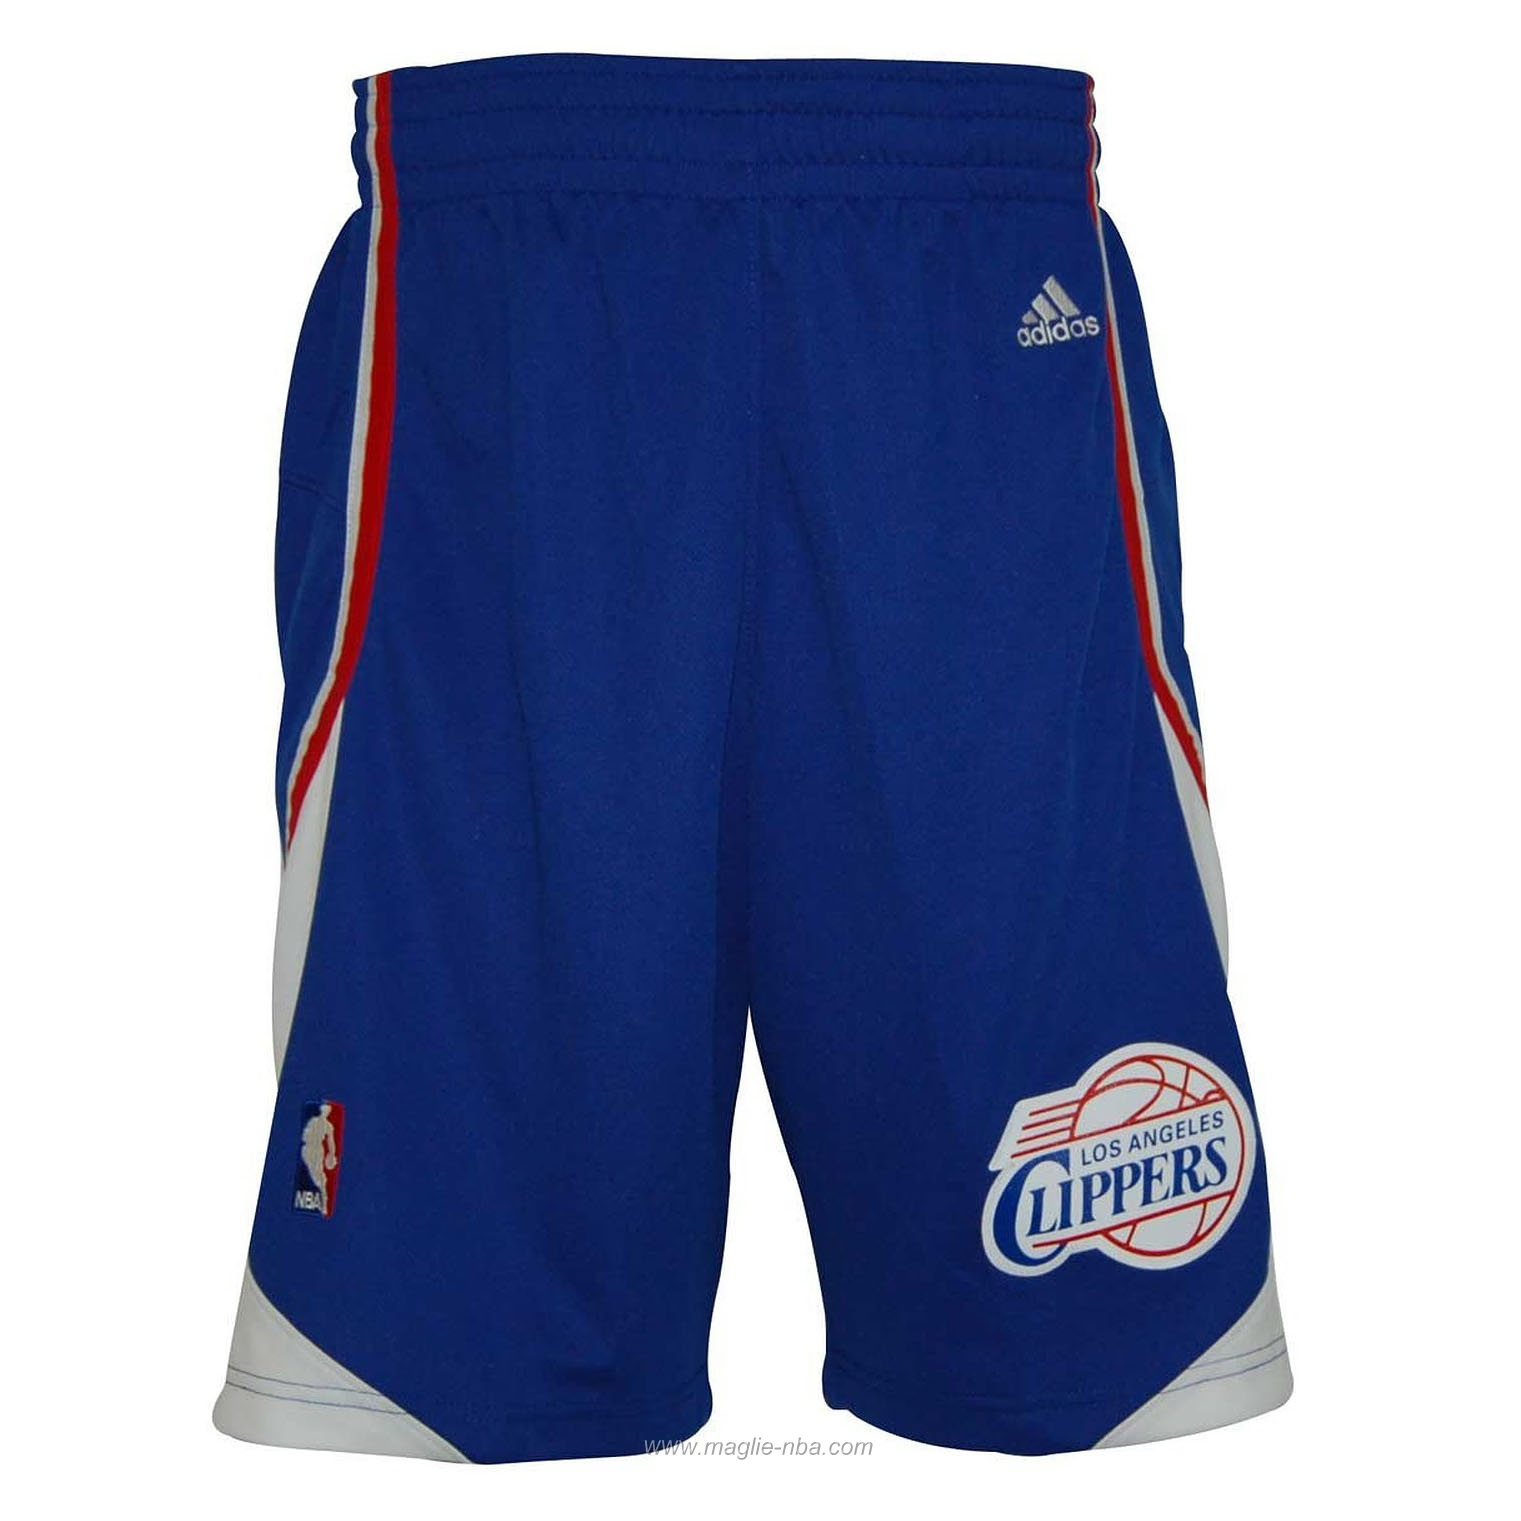 Pantaloncini basket nba blu Los Angeles Clippers